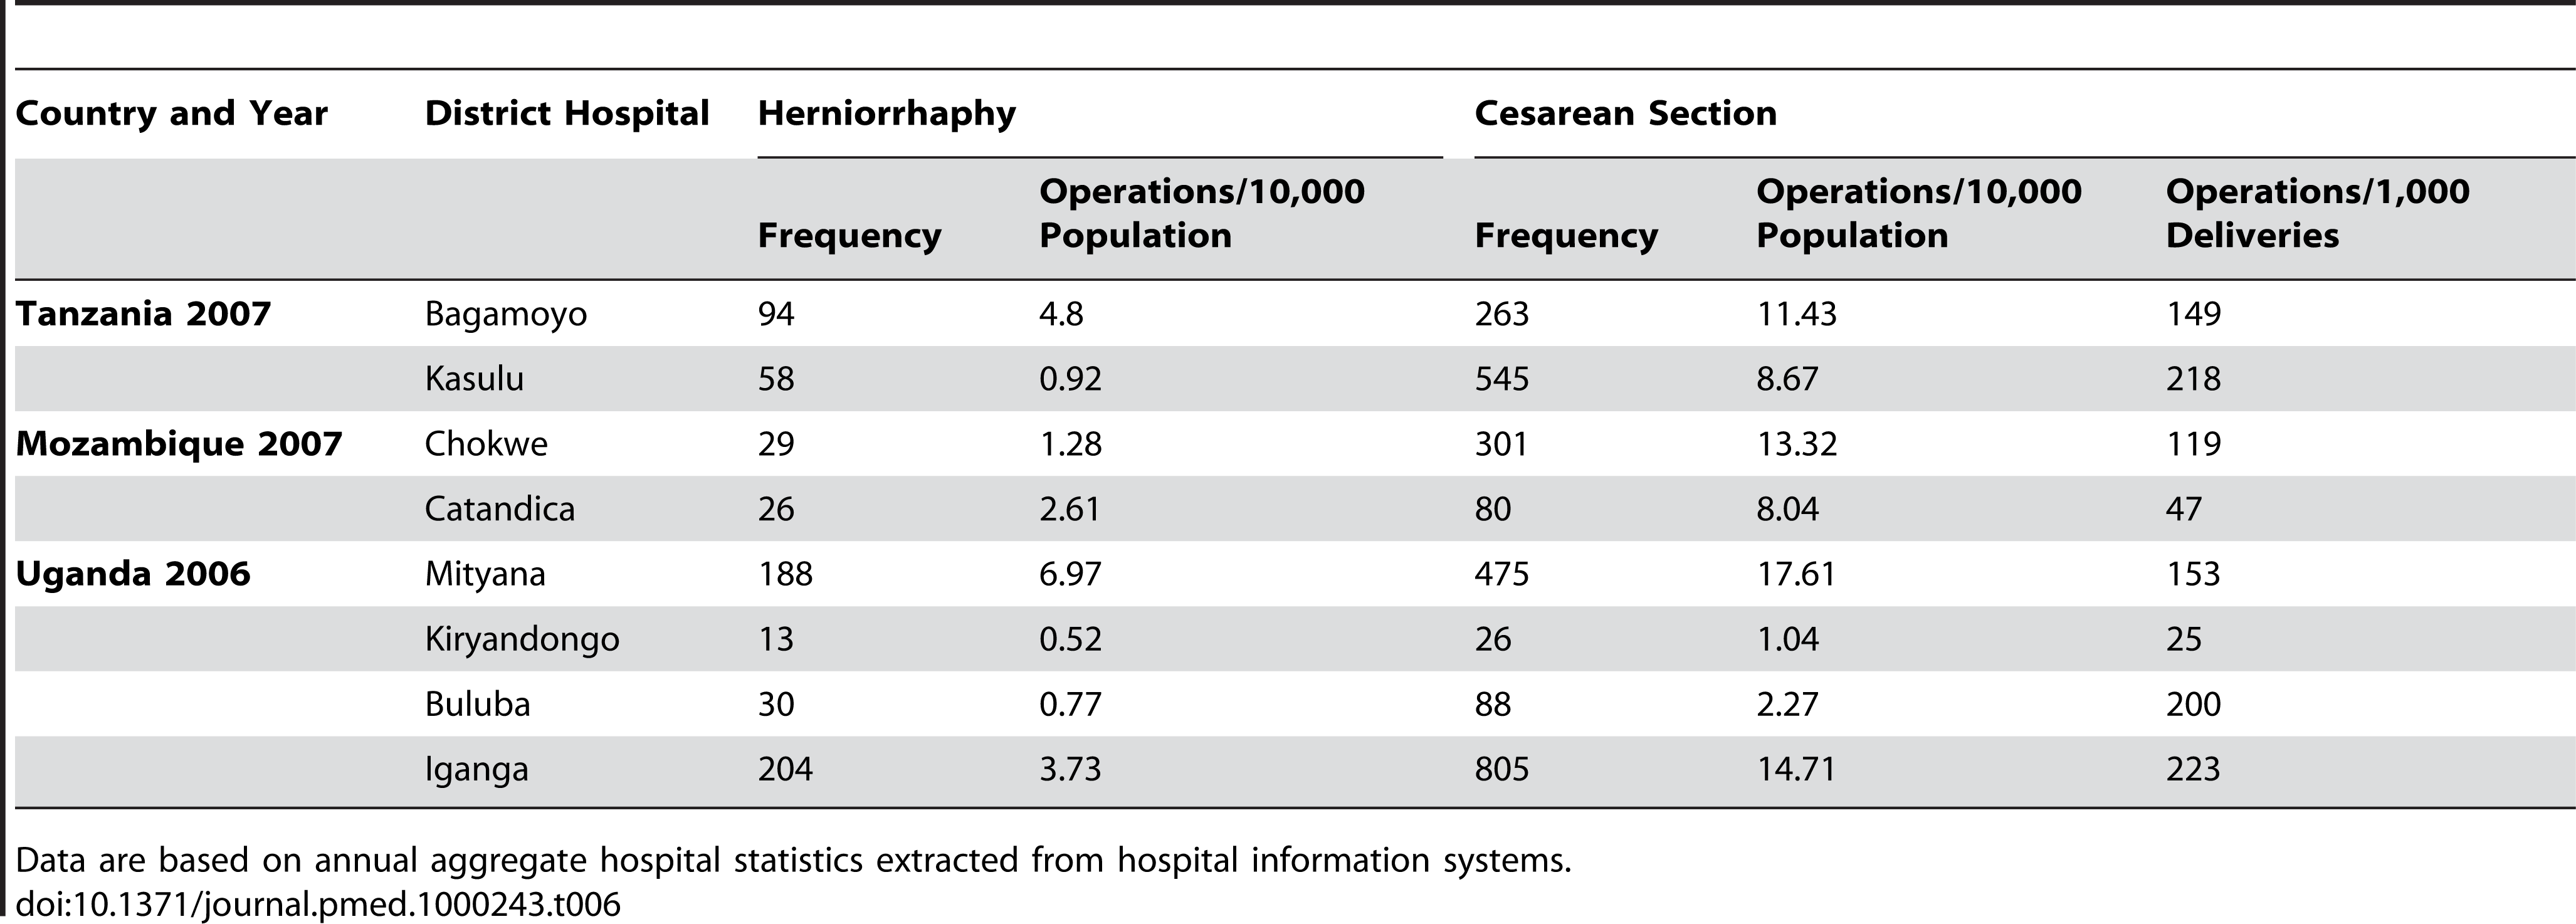 Annual rates of hernia operations and cesarean operations/10,000 population.